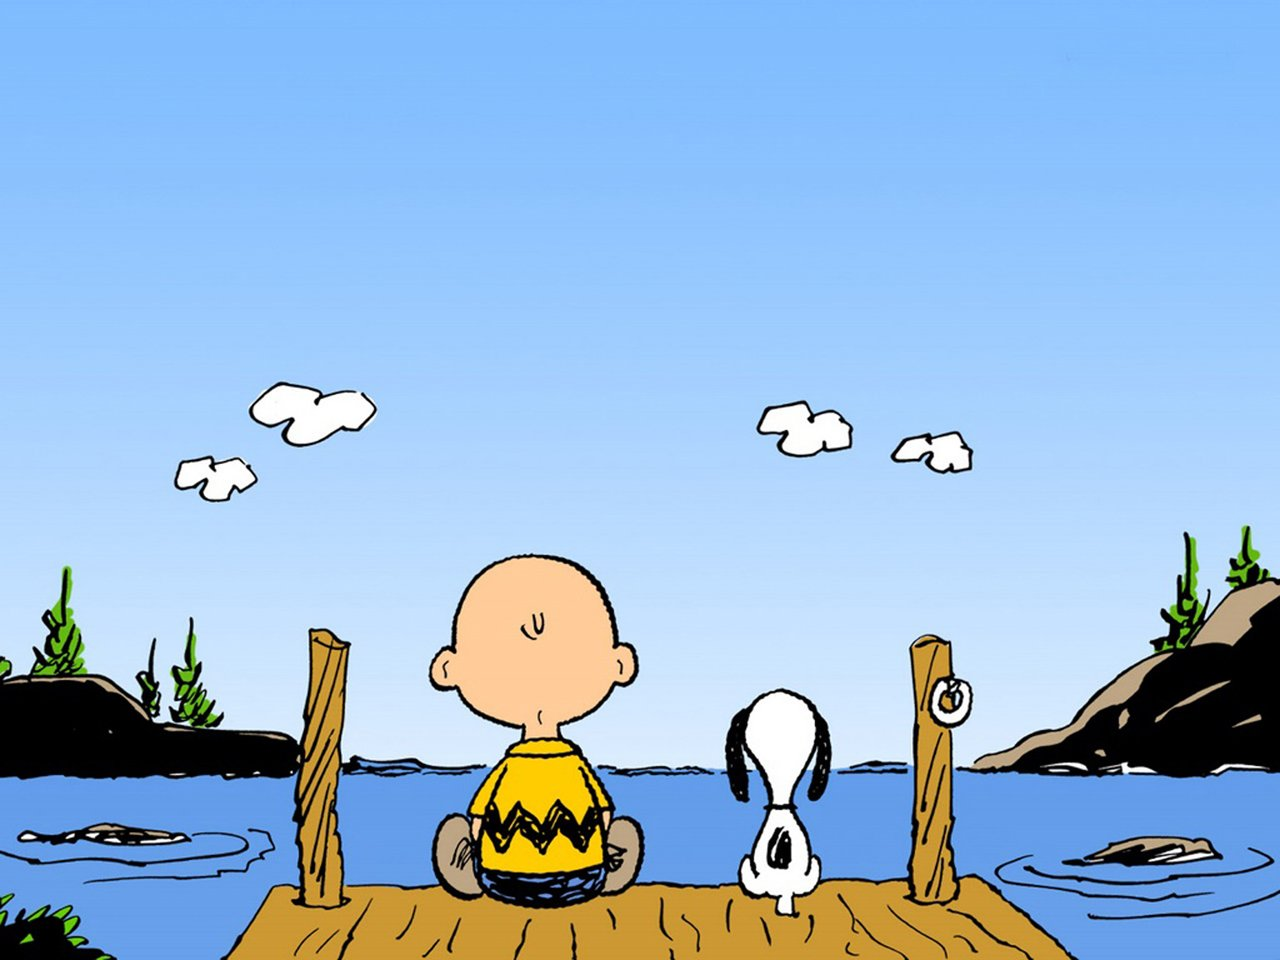 desktop wallpaper of Charlie Brown And Snoopy 1280x960